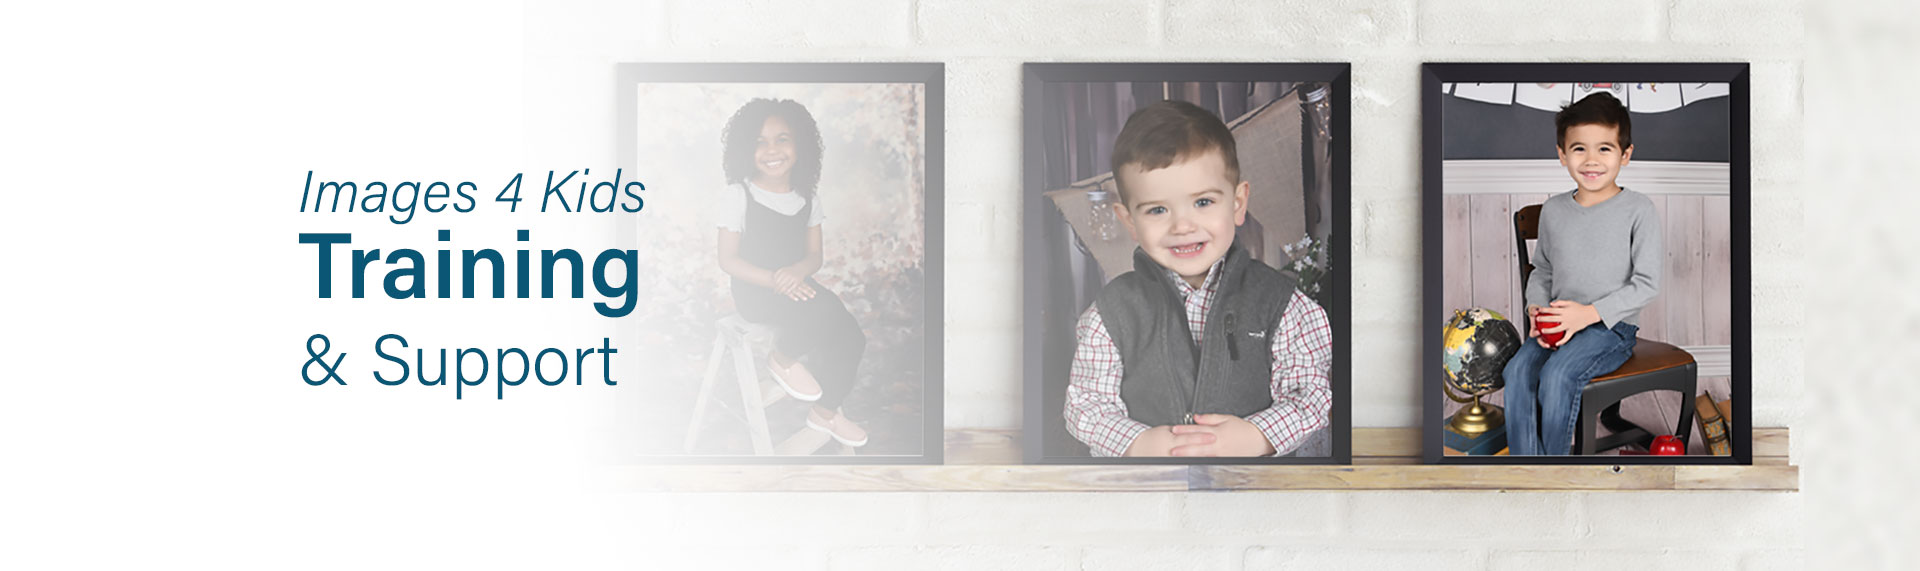 Images 4 Kids Preschool Photography Franchise - Daycare and Preschool Photography - Franchise Training And Support